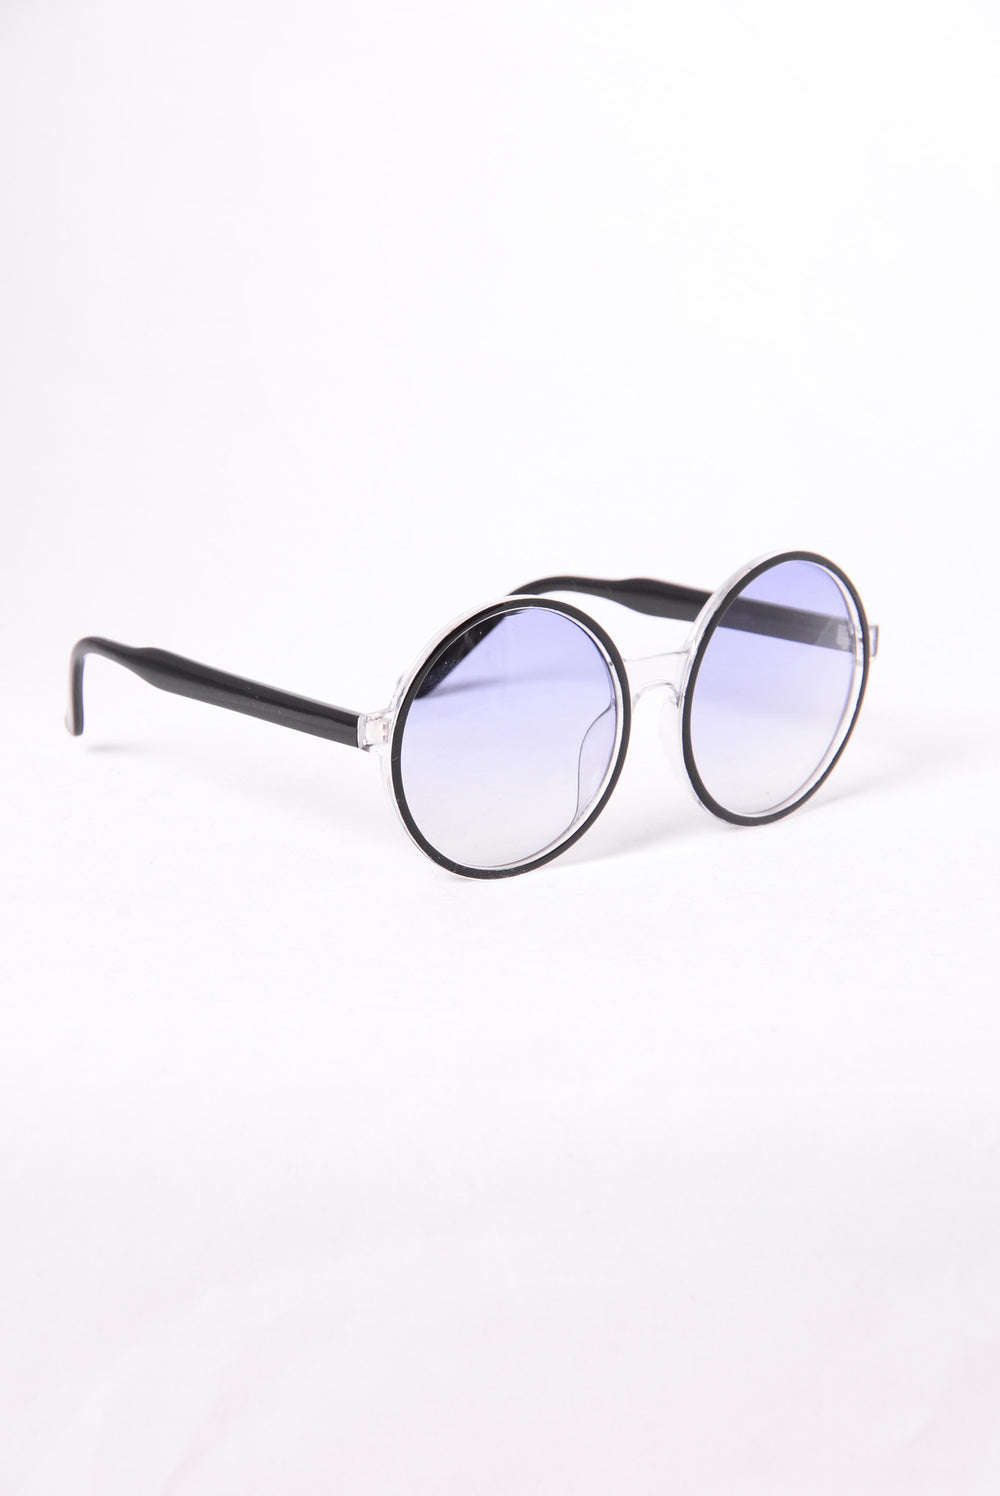 Laguna Beach Sunglasses - Black/Blue